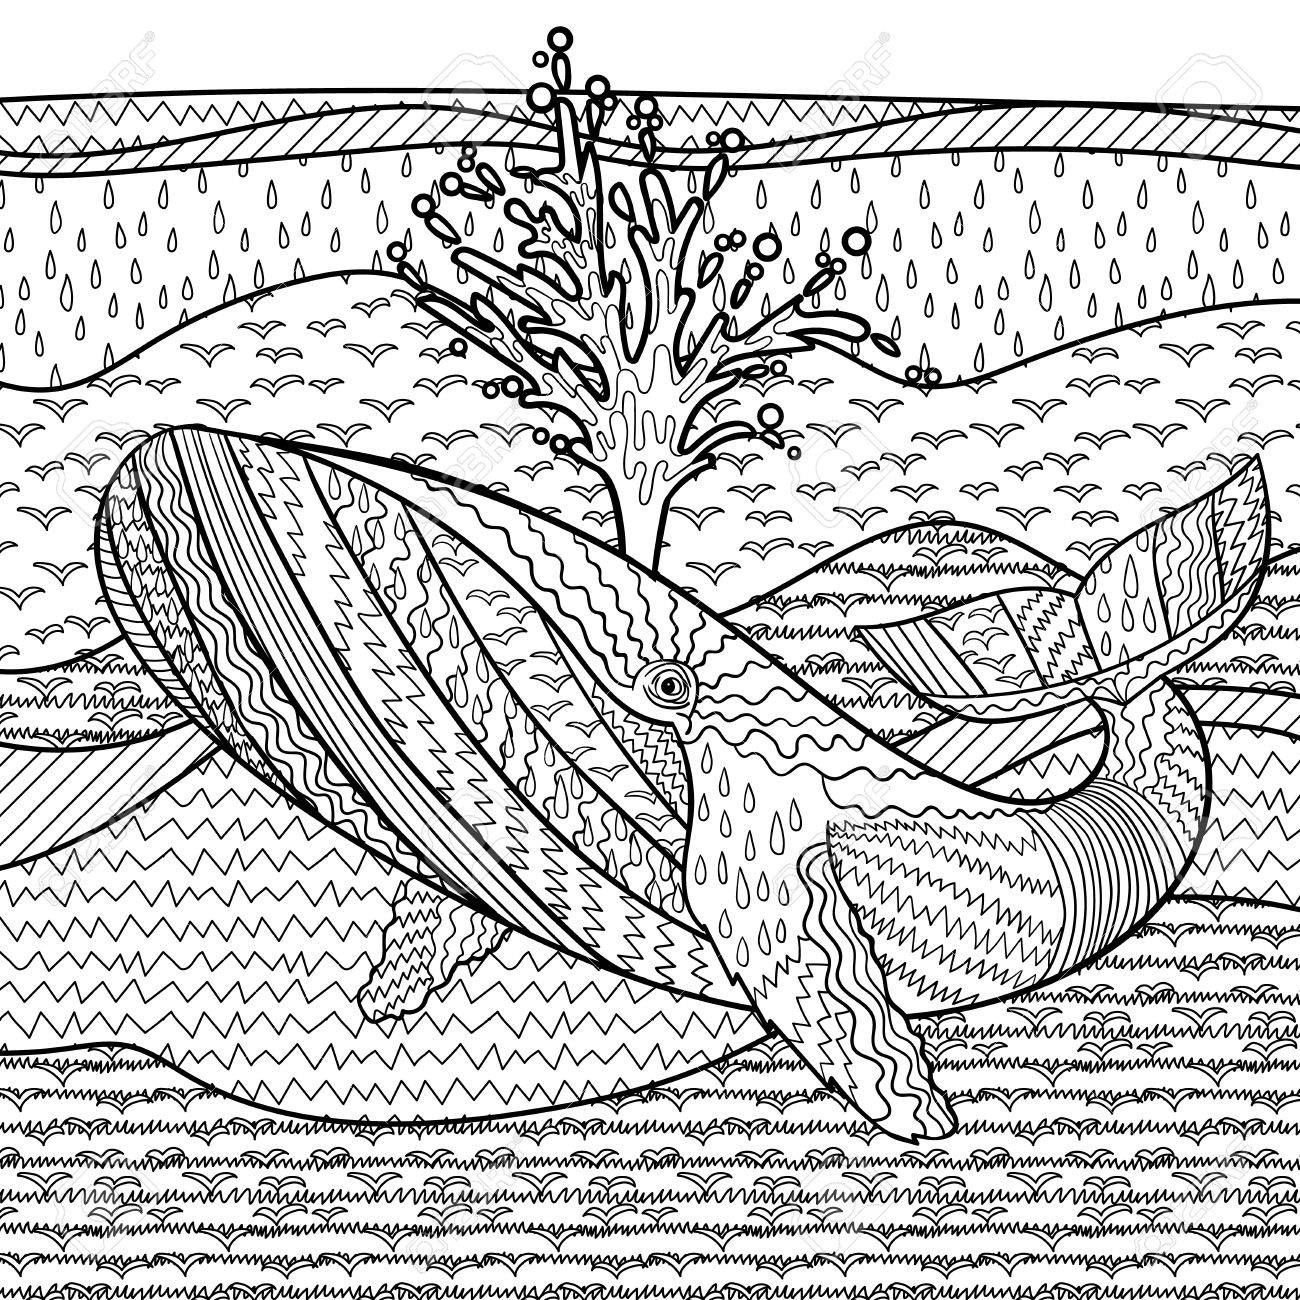 Hand Drawn Humpback Whale In The Waves For Anti Stress Coloring ...